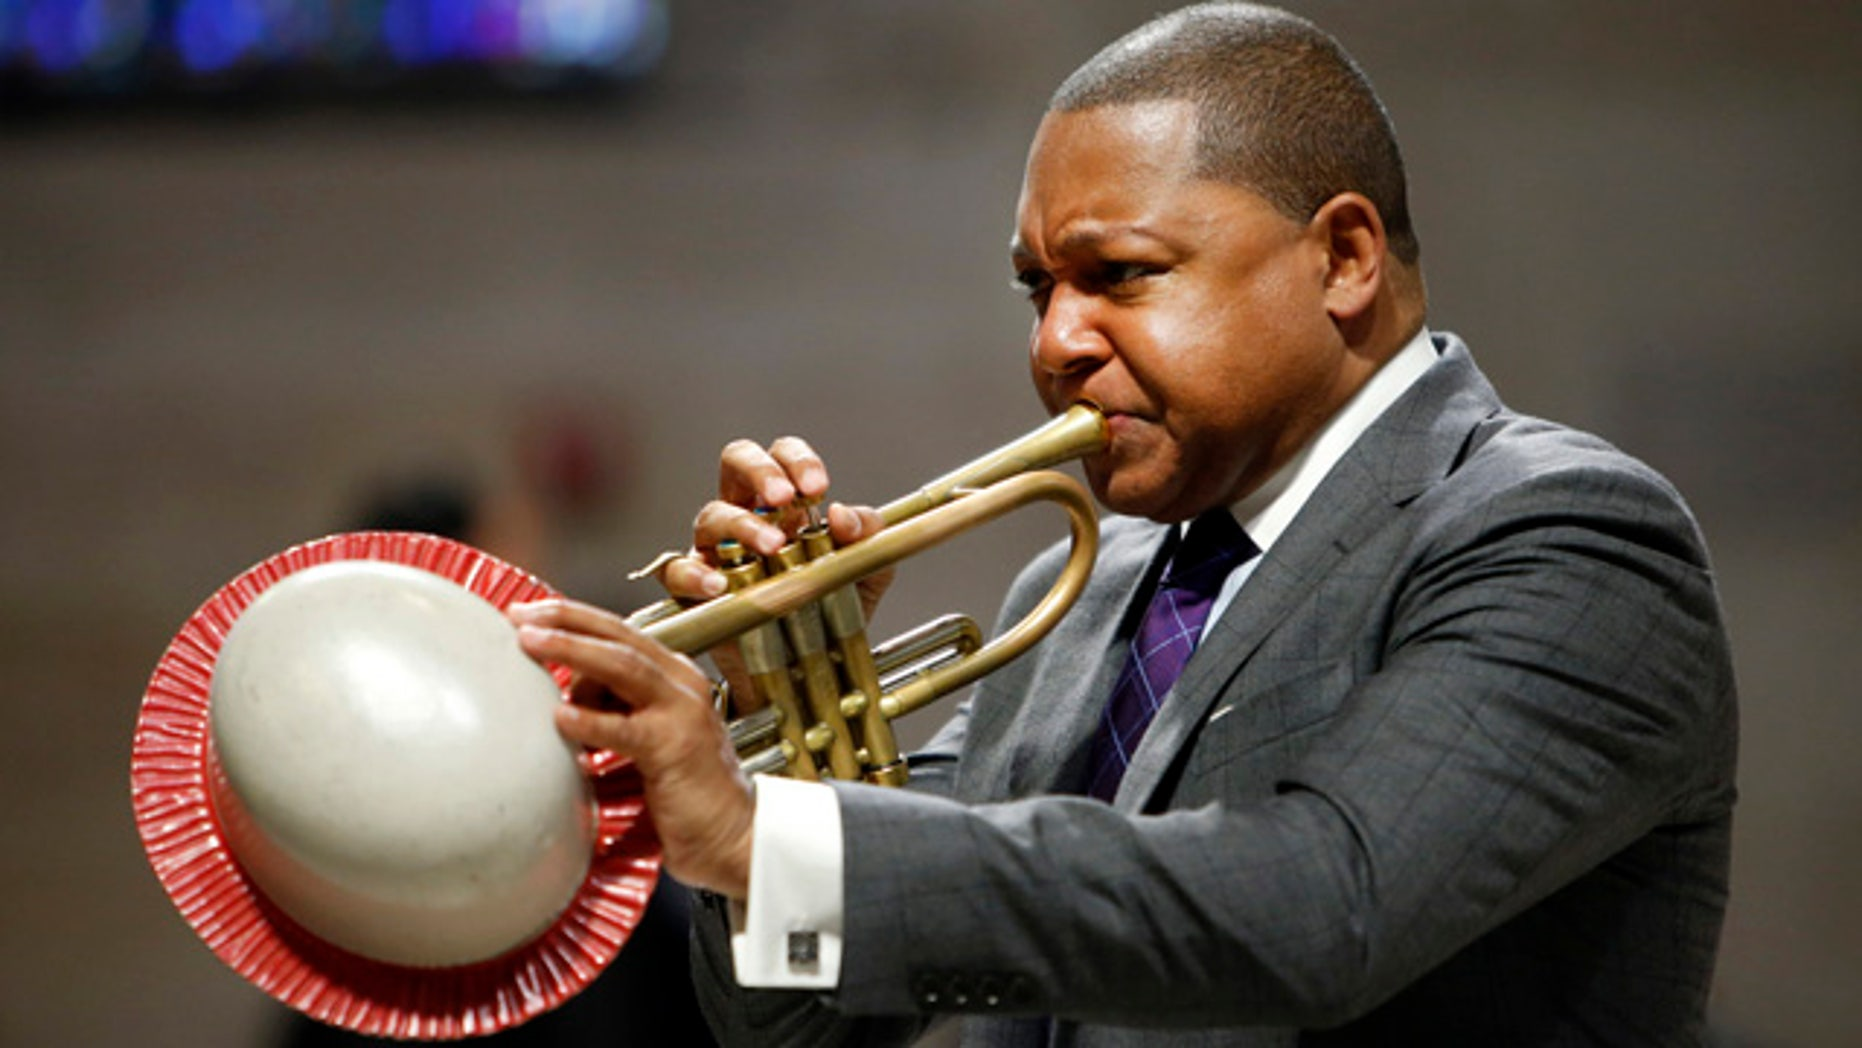 FILE - In this Sept. 20, 2014, file photo, musician Wynton Marsalis performs during a memorial service for actress Ruby Dee at The Riverside Church in New York. (AP Photo/Jason DeCrow, File)